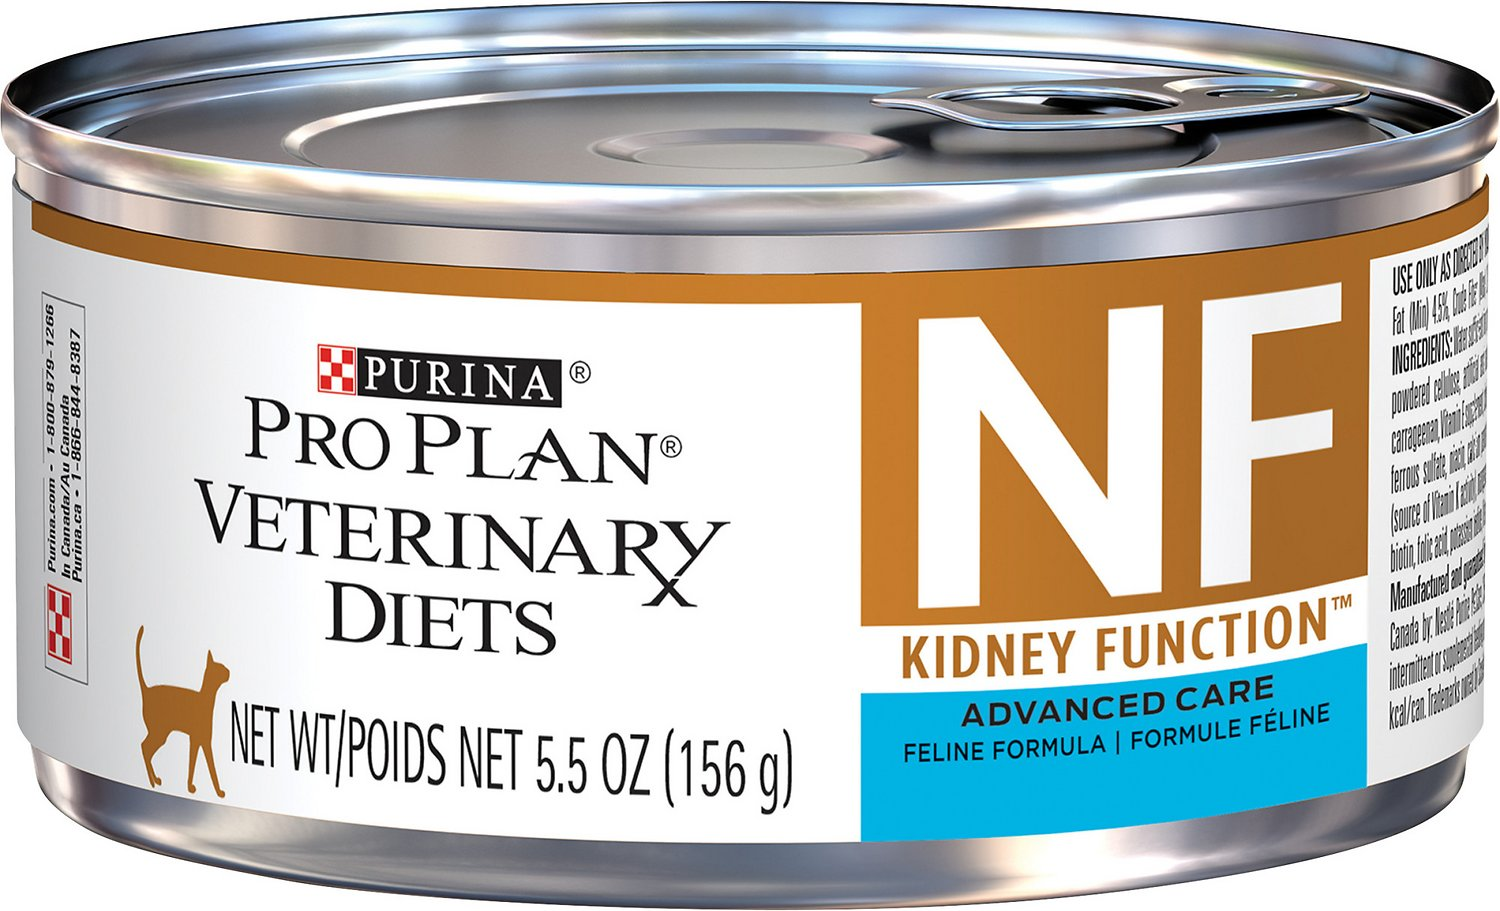 Purina Pro Plan Kidney Function Canned Cat Food